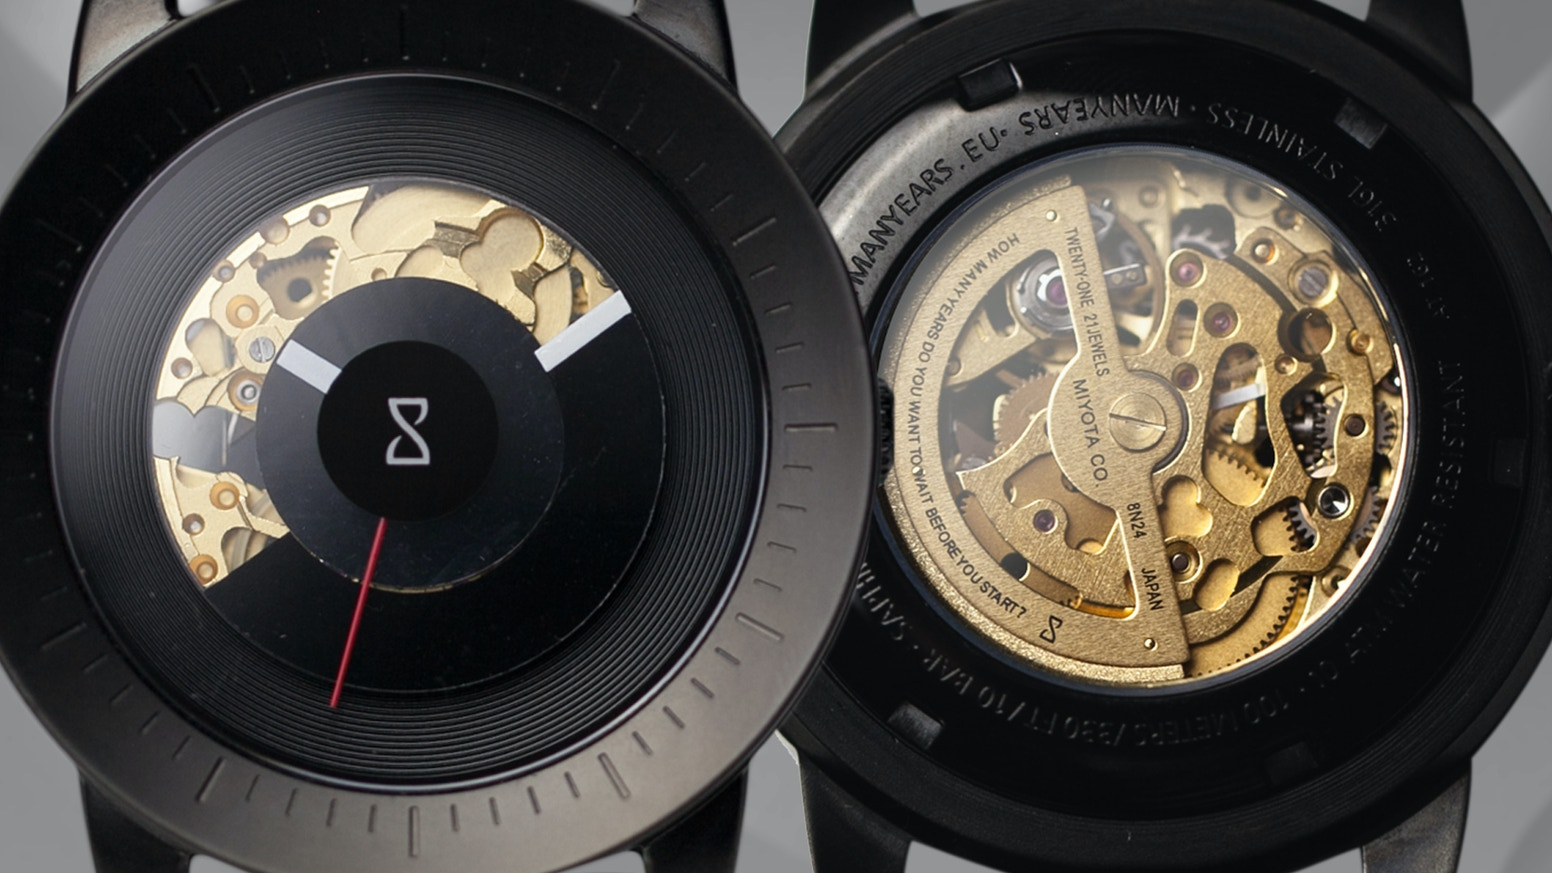 MOTION is a watch with an unique dial which rotates around its own axis. It's build with high quality and is permanently in motion.